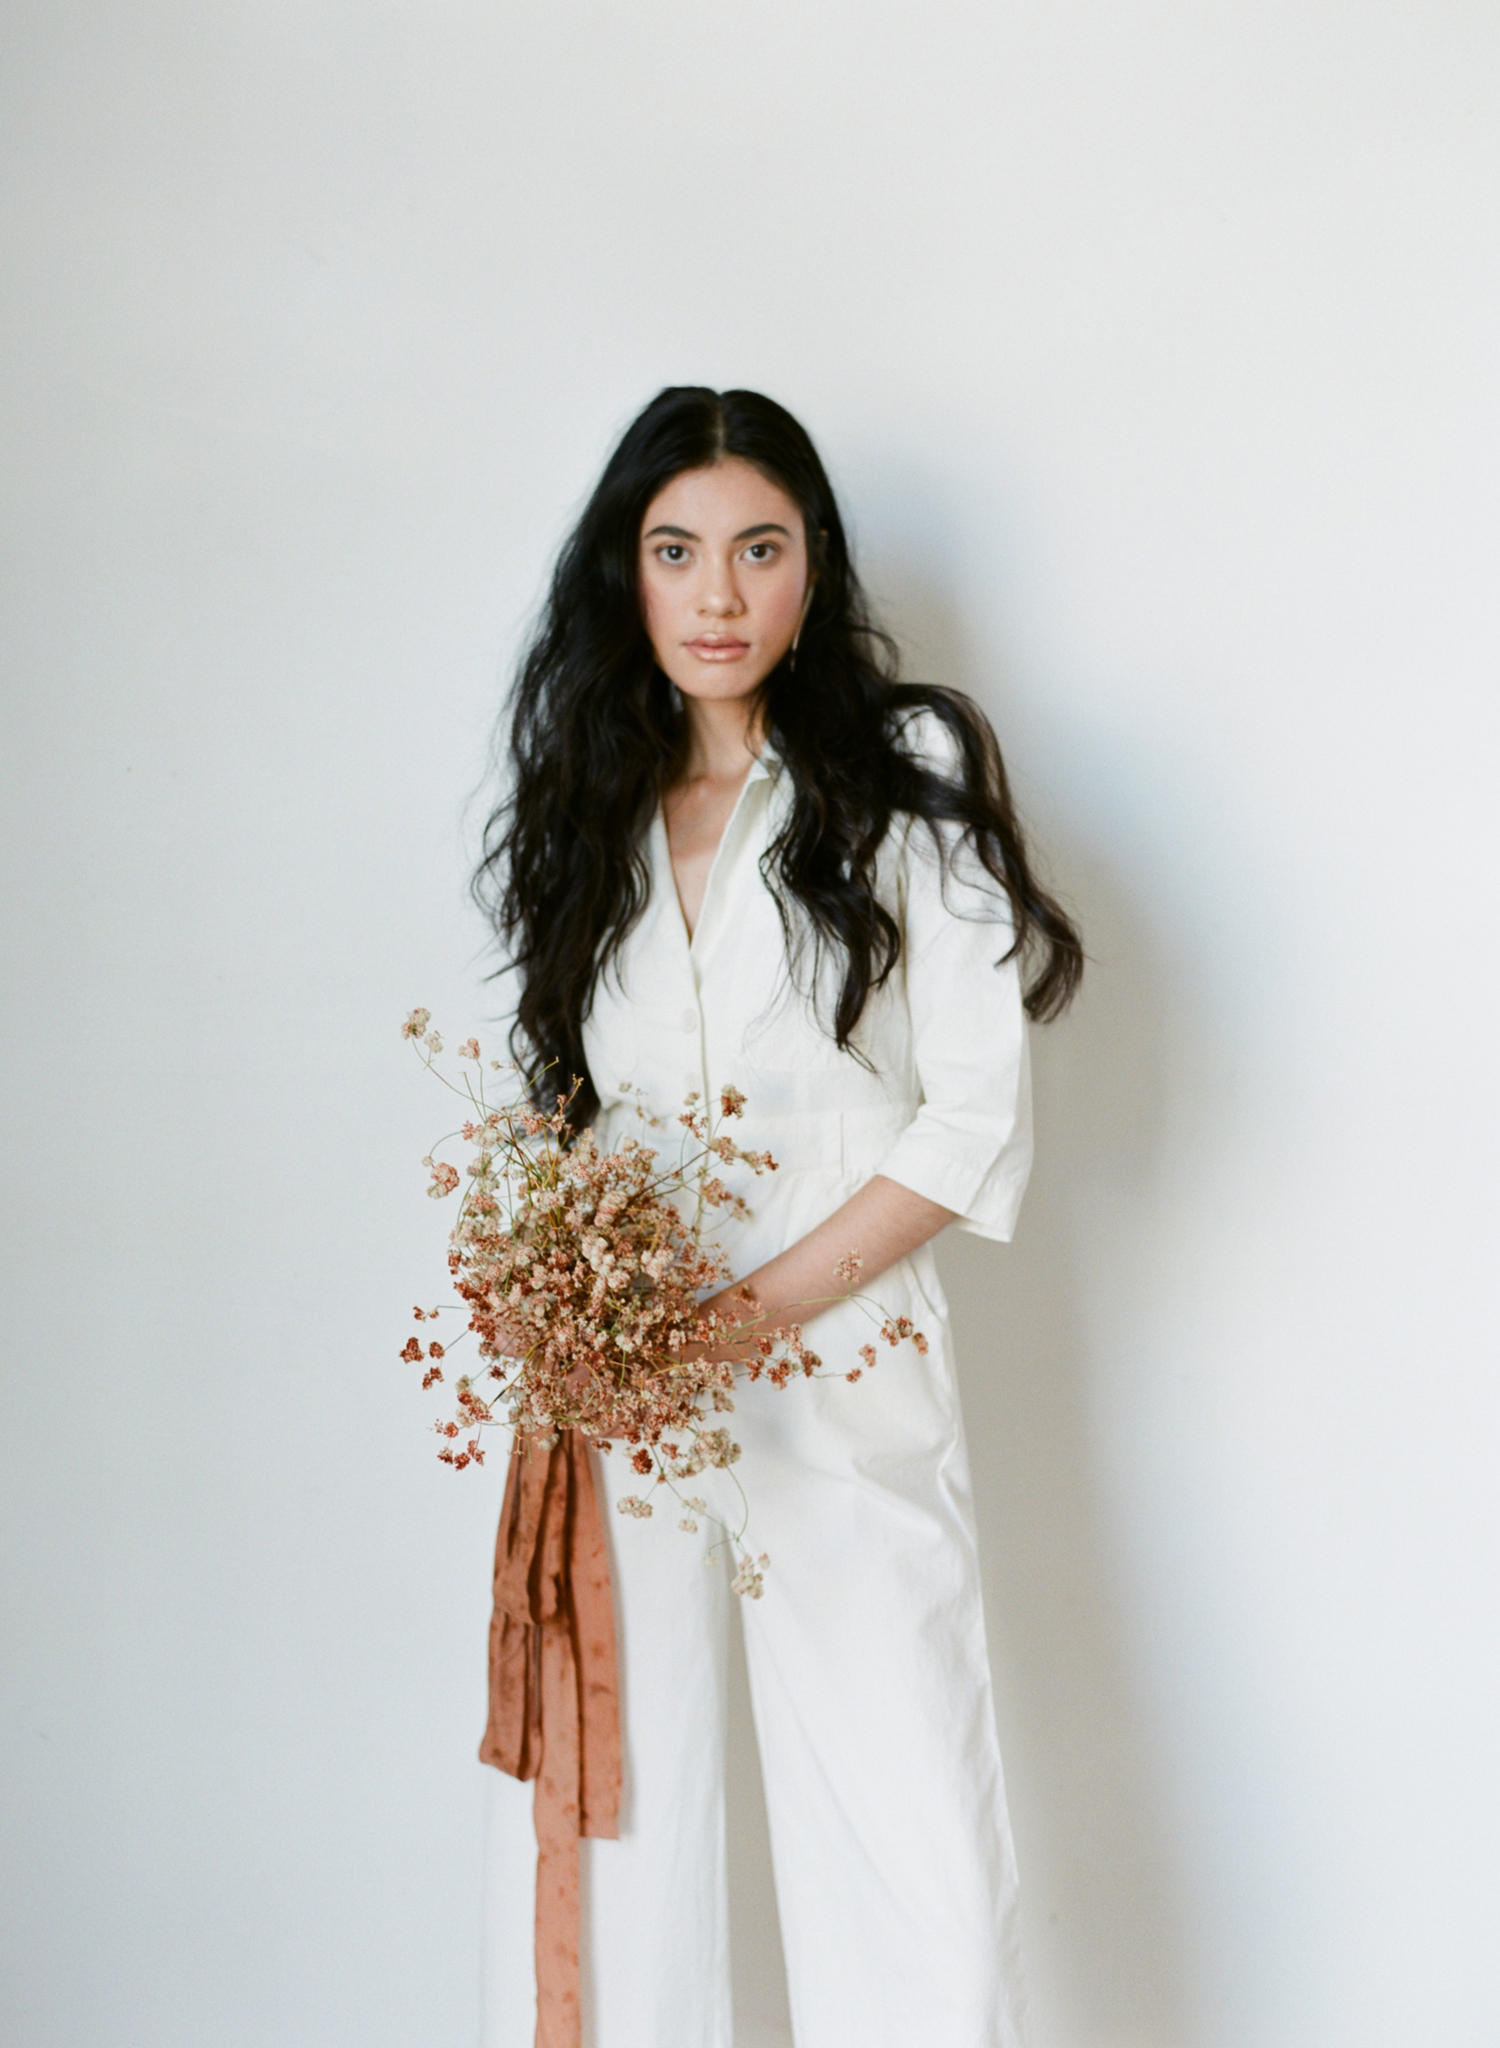 single flower wedding bouquet dried wildflowers held by bride in jumpsuit